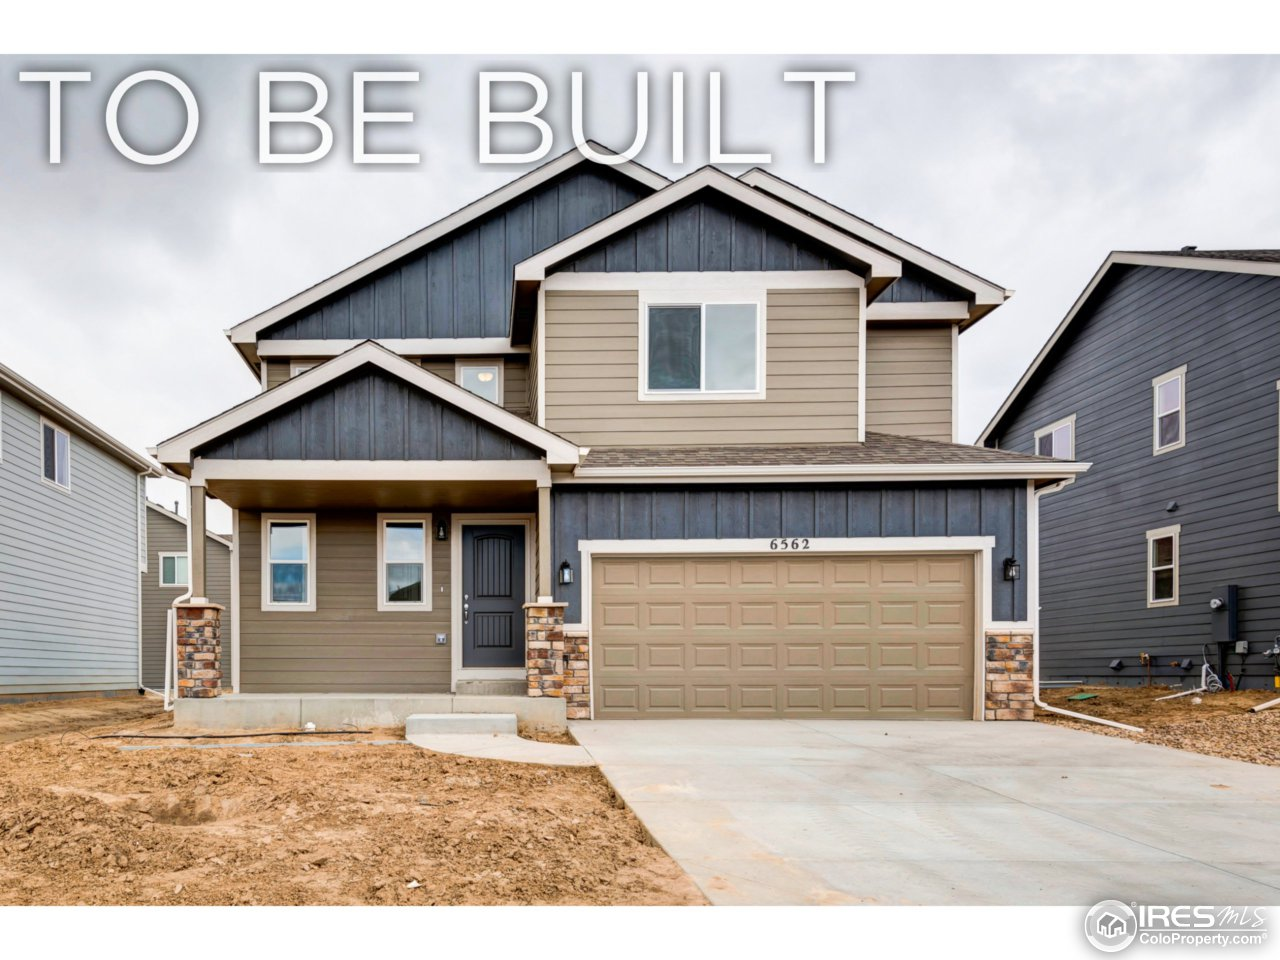 5595 Clarence Dr, Windsor, CO 80550